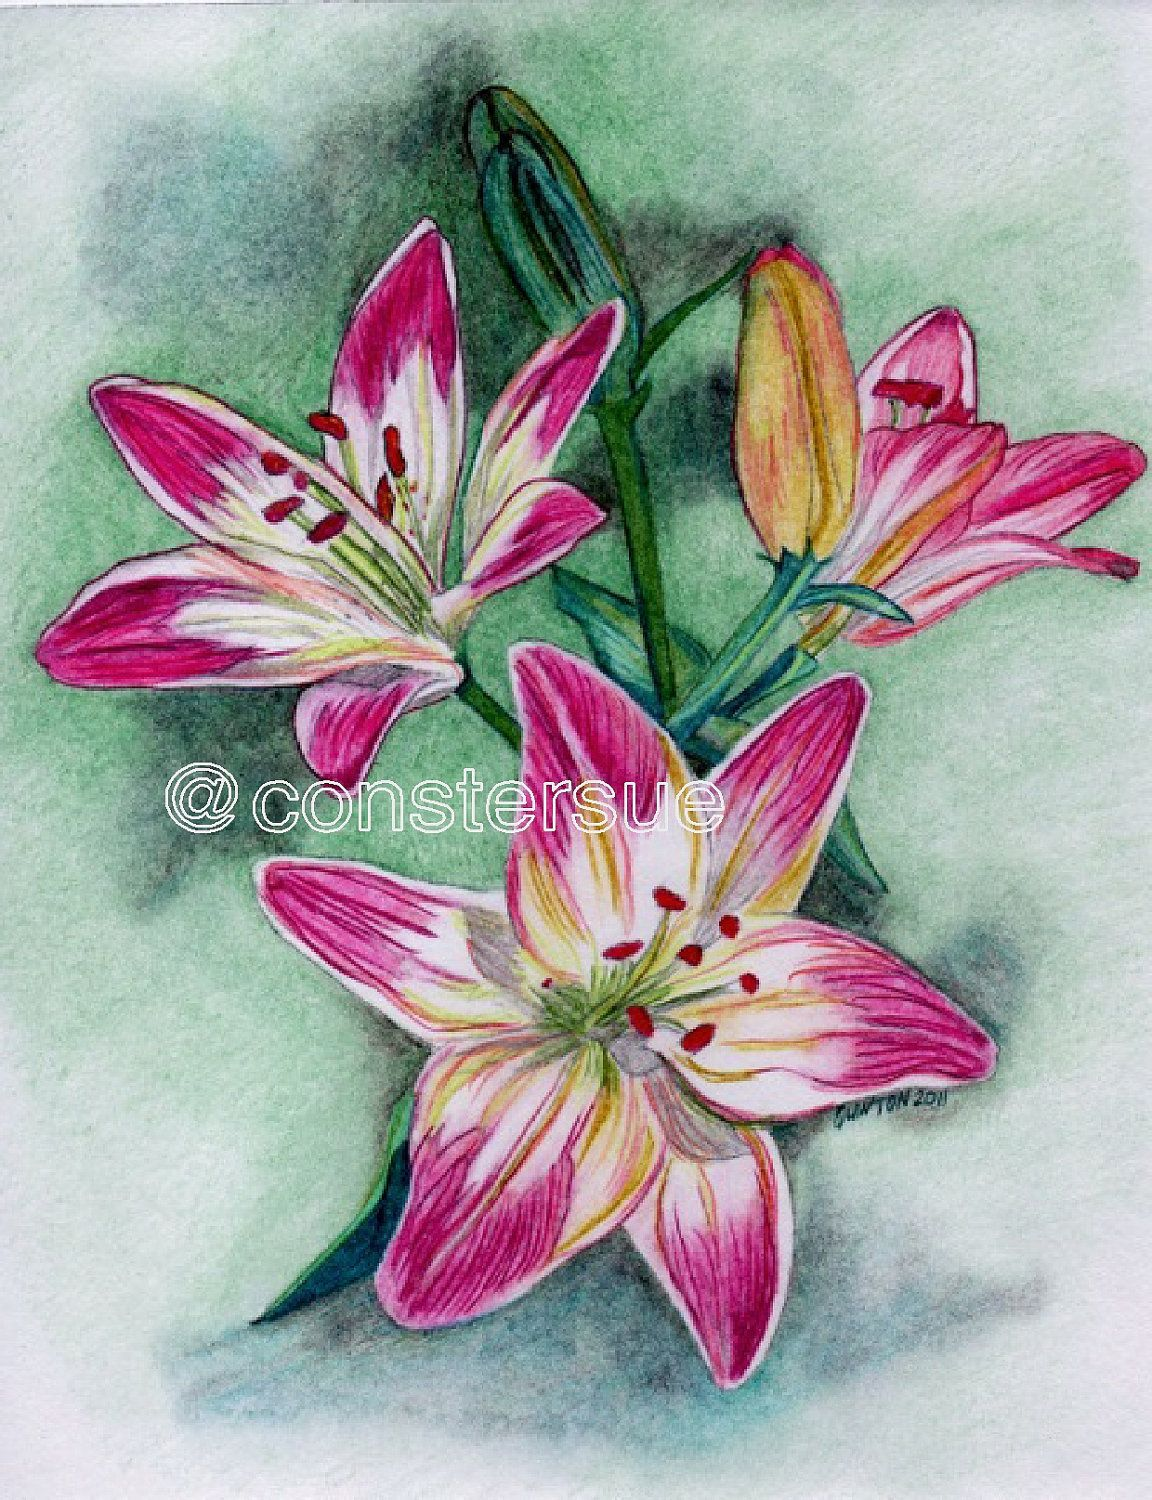 How to draw with colored pencils - 35 Beautiful Flower Drawings And Realistic Color Pencil Drawings